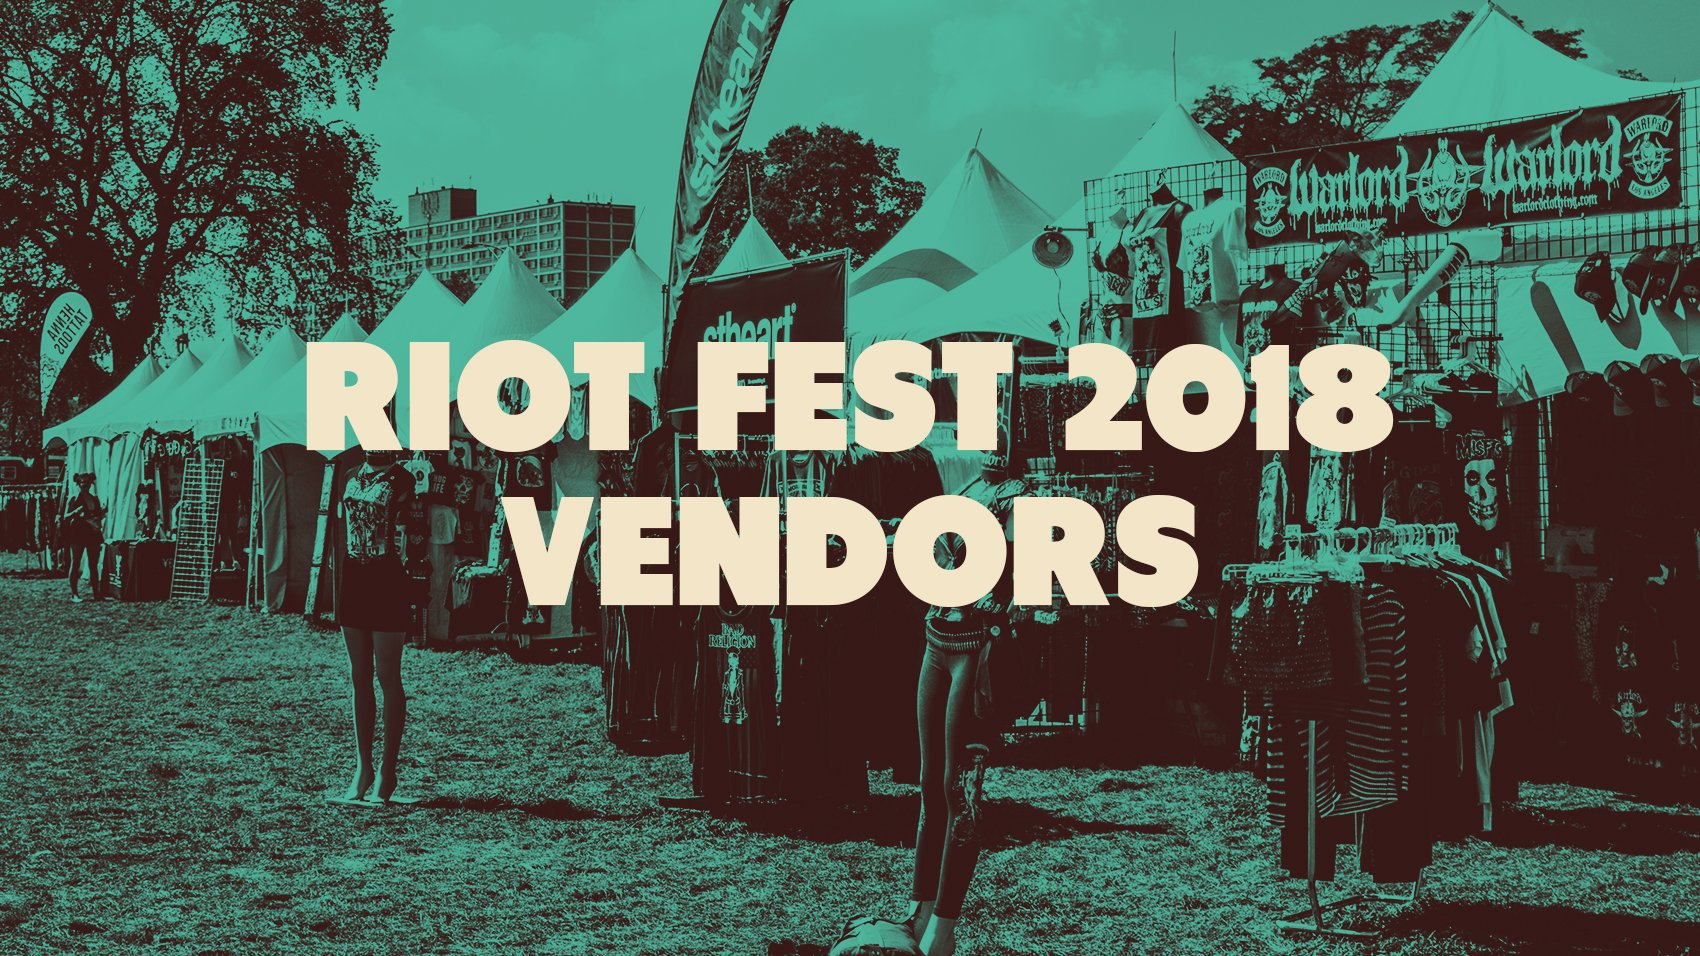 Did you miss a Riot Fest Vendor? We made you a list: https://t.co/G38HWuGyza https://t.co/3G8tokxWsA